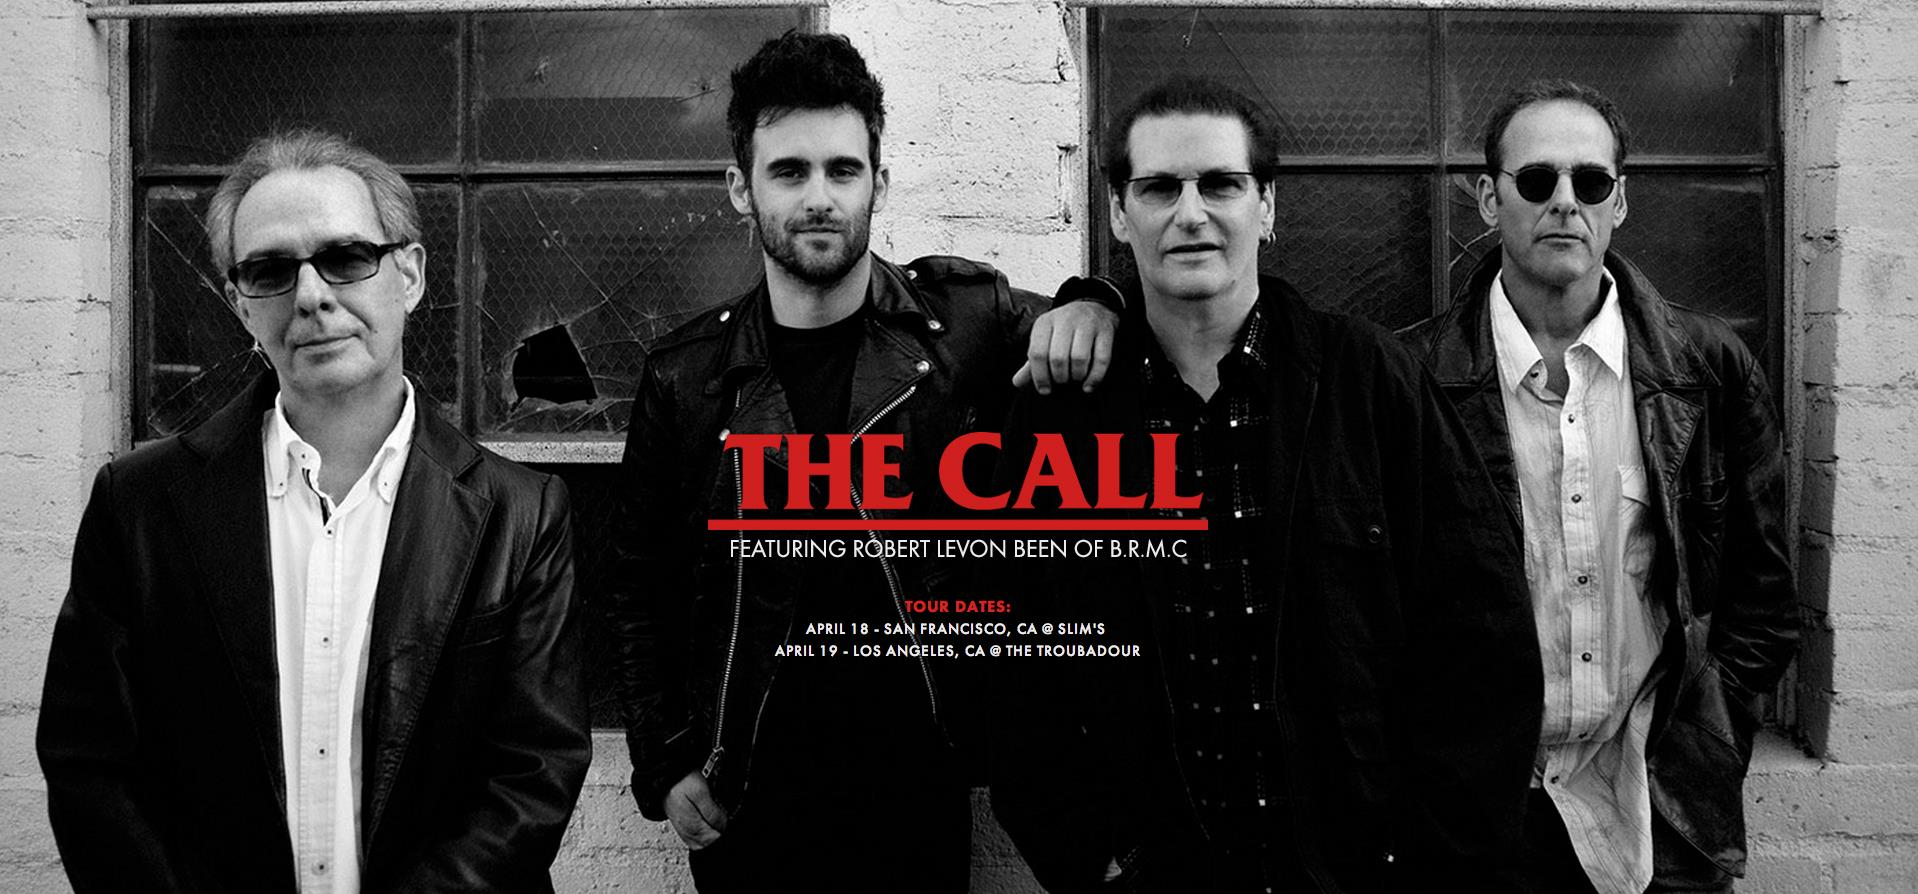 The Call featuring Robert Levon Been of B.R.M.C. 2